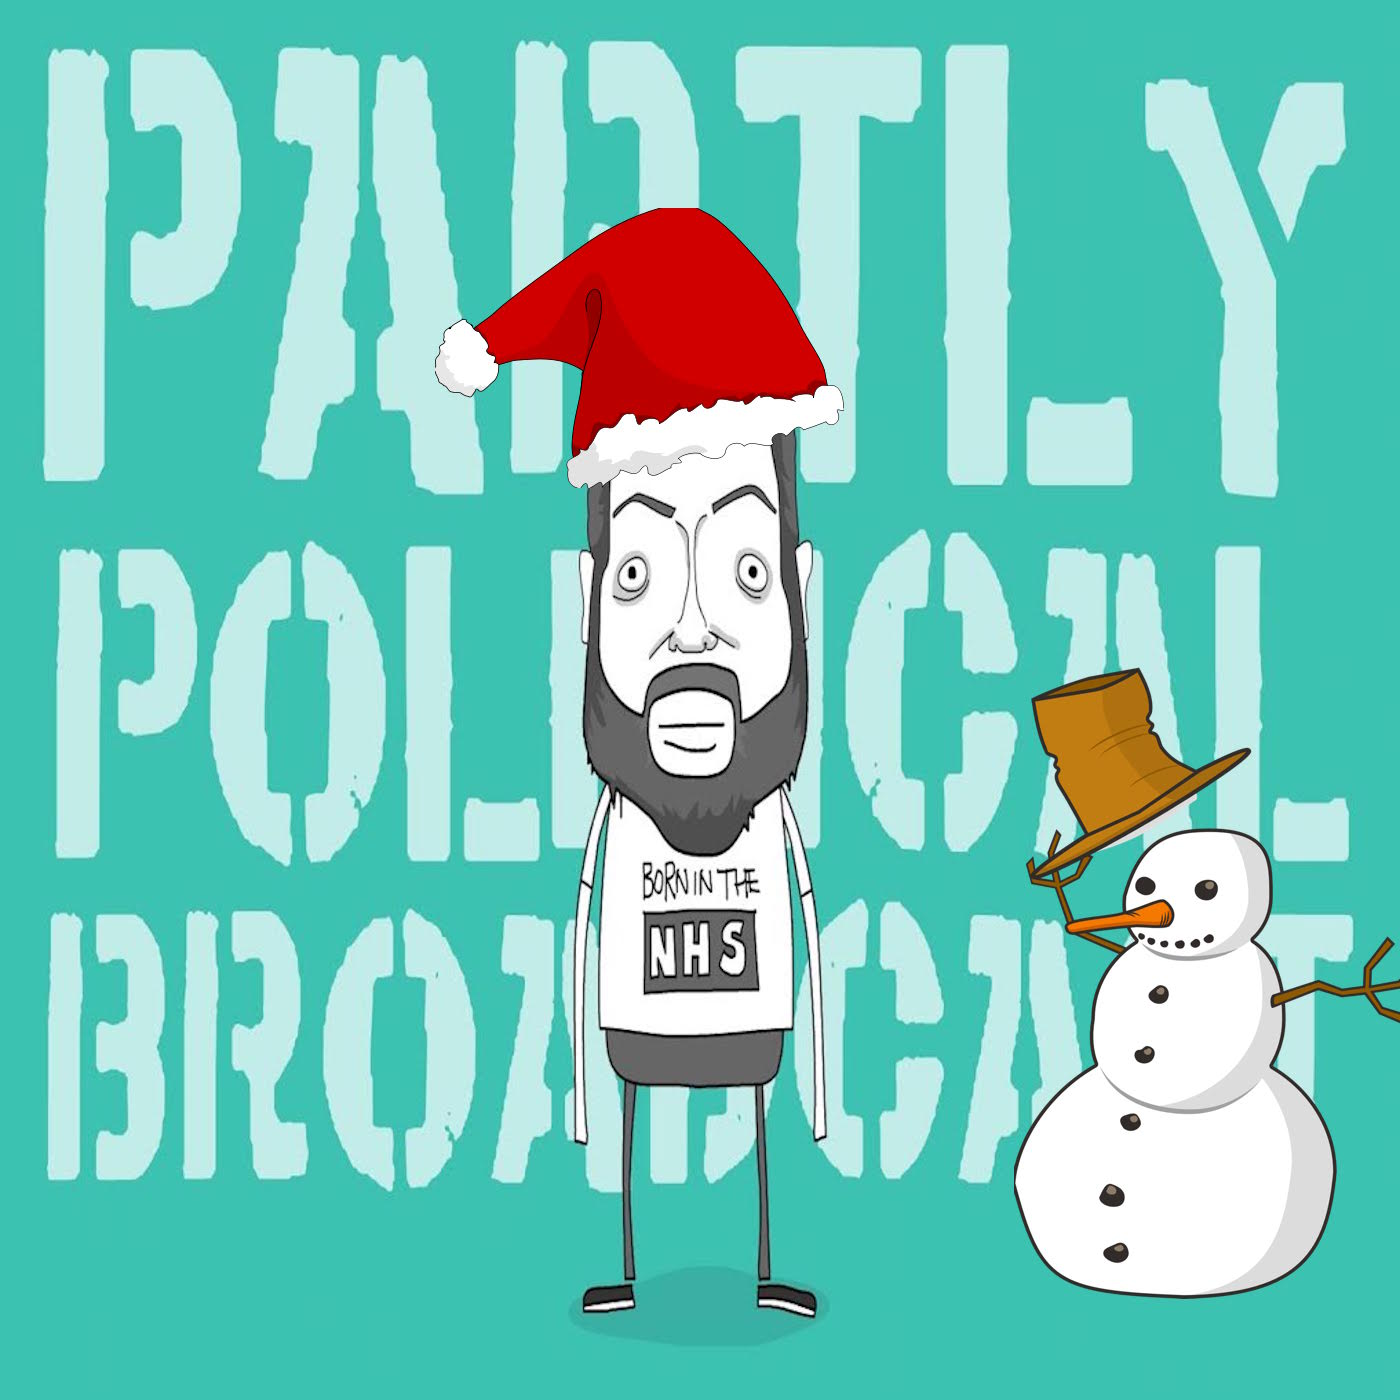 Episode 125 – Eggnog In Spain – No Confidence In Anything Especially Theresa May, Tatton Spiller from Simple Politics, Workplace Reform, ITS CHRISTMAS